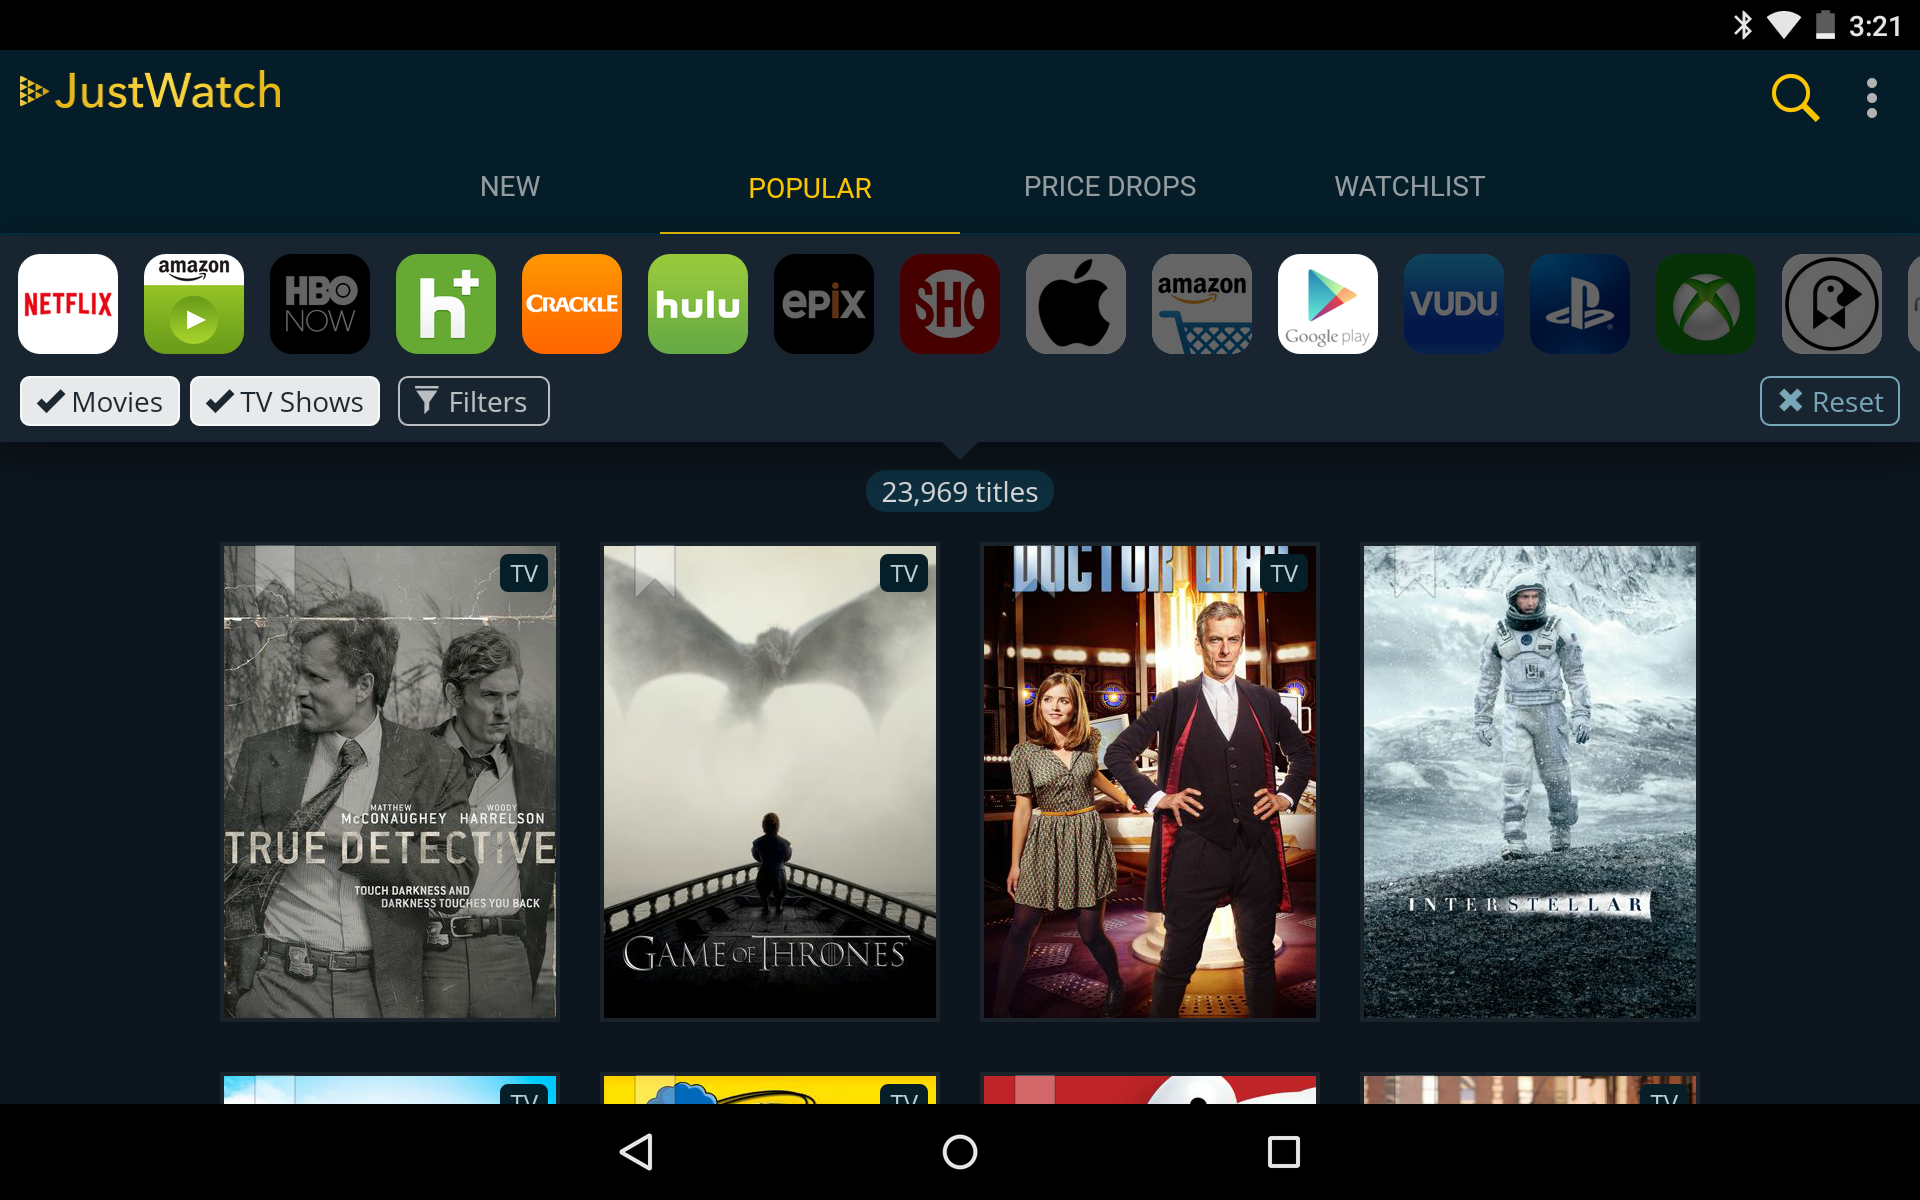 Is Popcorn Time Safe To Use Popcorn Time Is Popcorn Time Safe Popcorn Time Alternative Popcorn Time Alternative And Popcorn Times Movies Free Movies Online